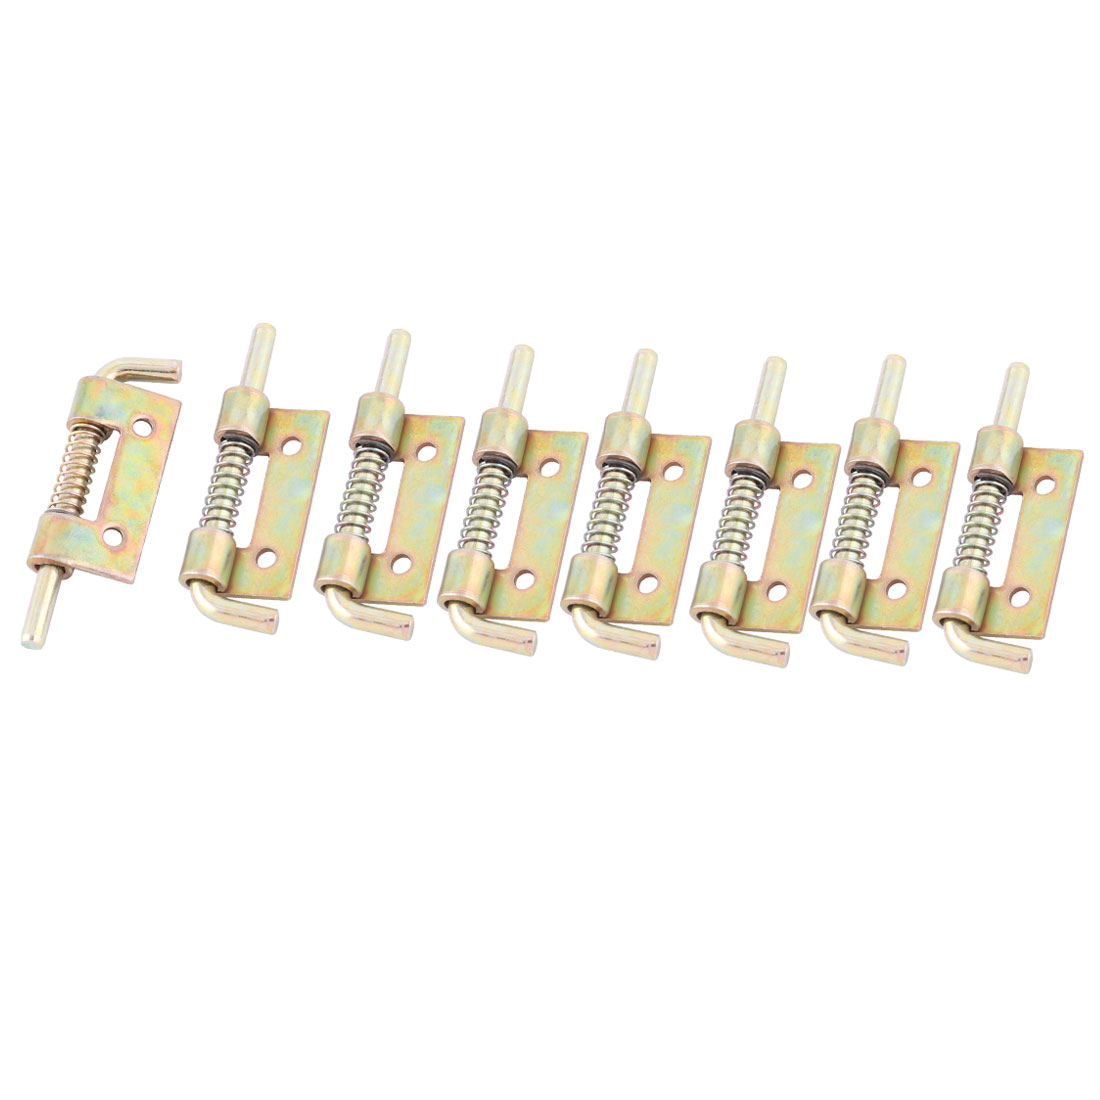 Passage Stainless Steel Furniture Door Gate Spring Latch 2 Inch Length 8 Pcs